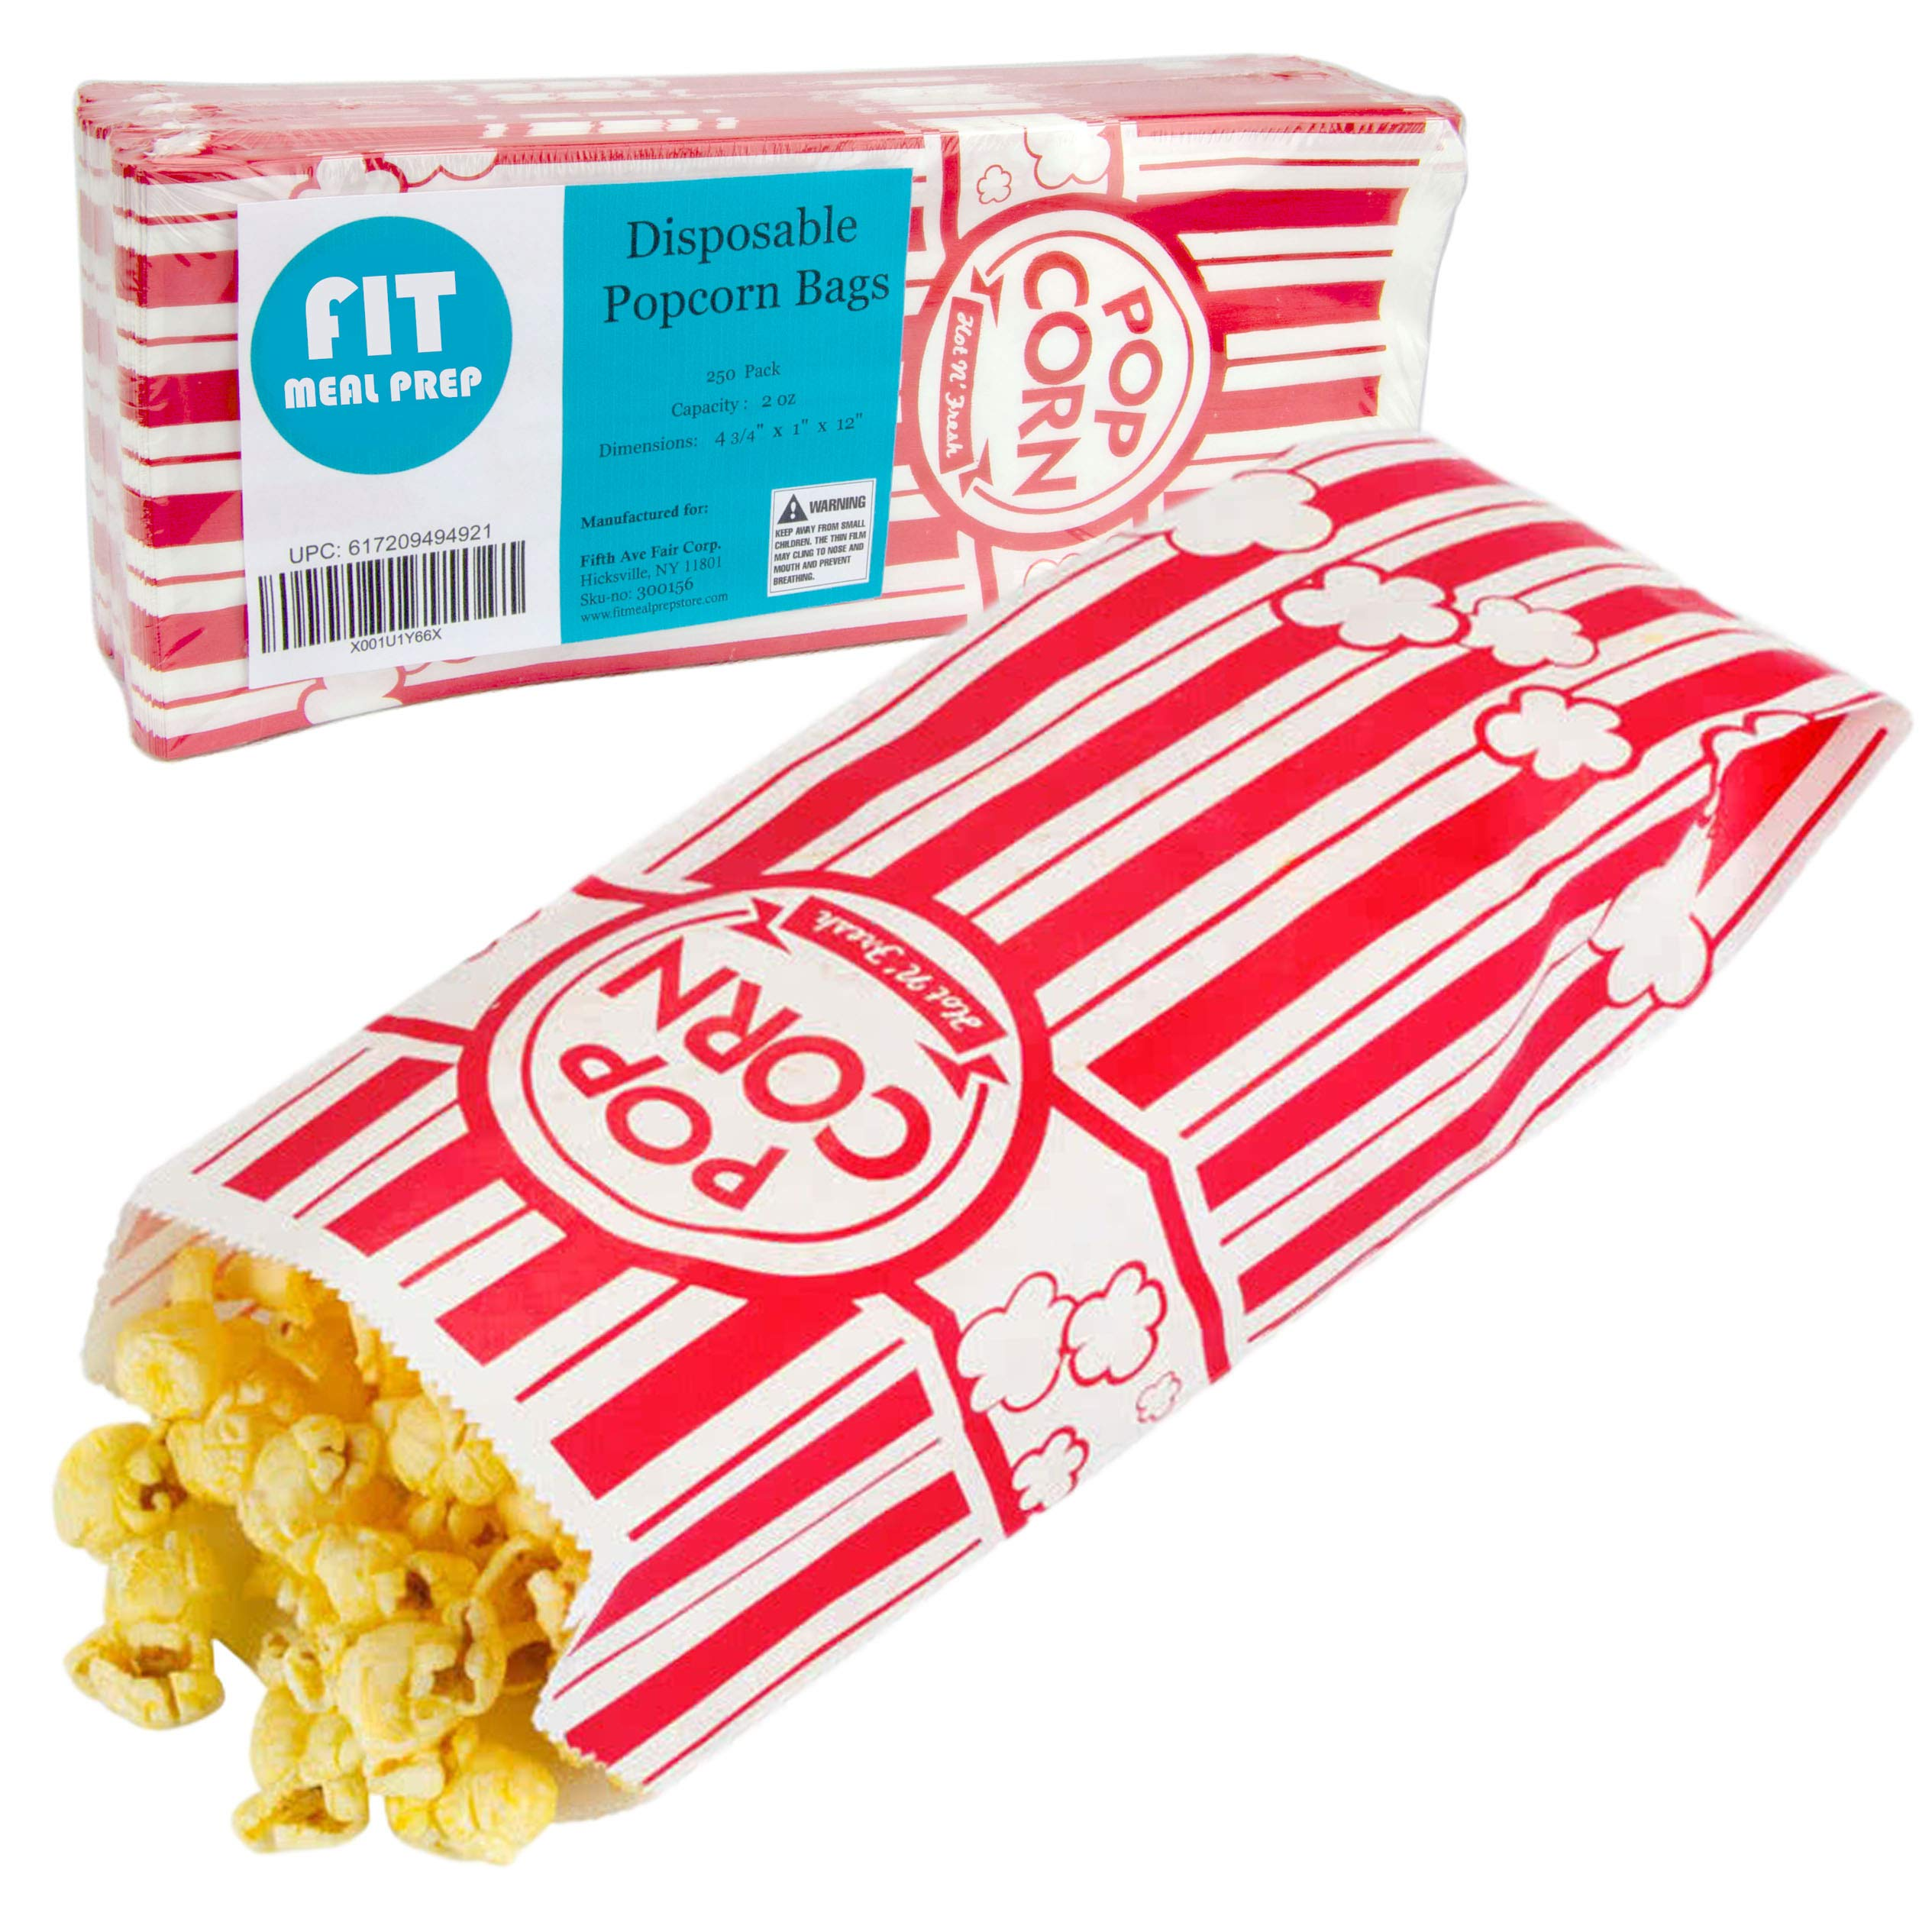 [250 Pack] 2 oz Popcorn Bags - Disposable Popcorn Containers Paper Popcorn Boxes Flat Bottom Striped Red and White - Perfect for Movie Night, Concessions, Carnival Party Circus by Fit Meal Prep